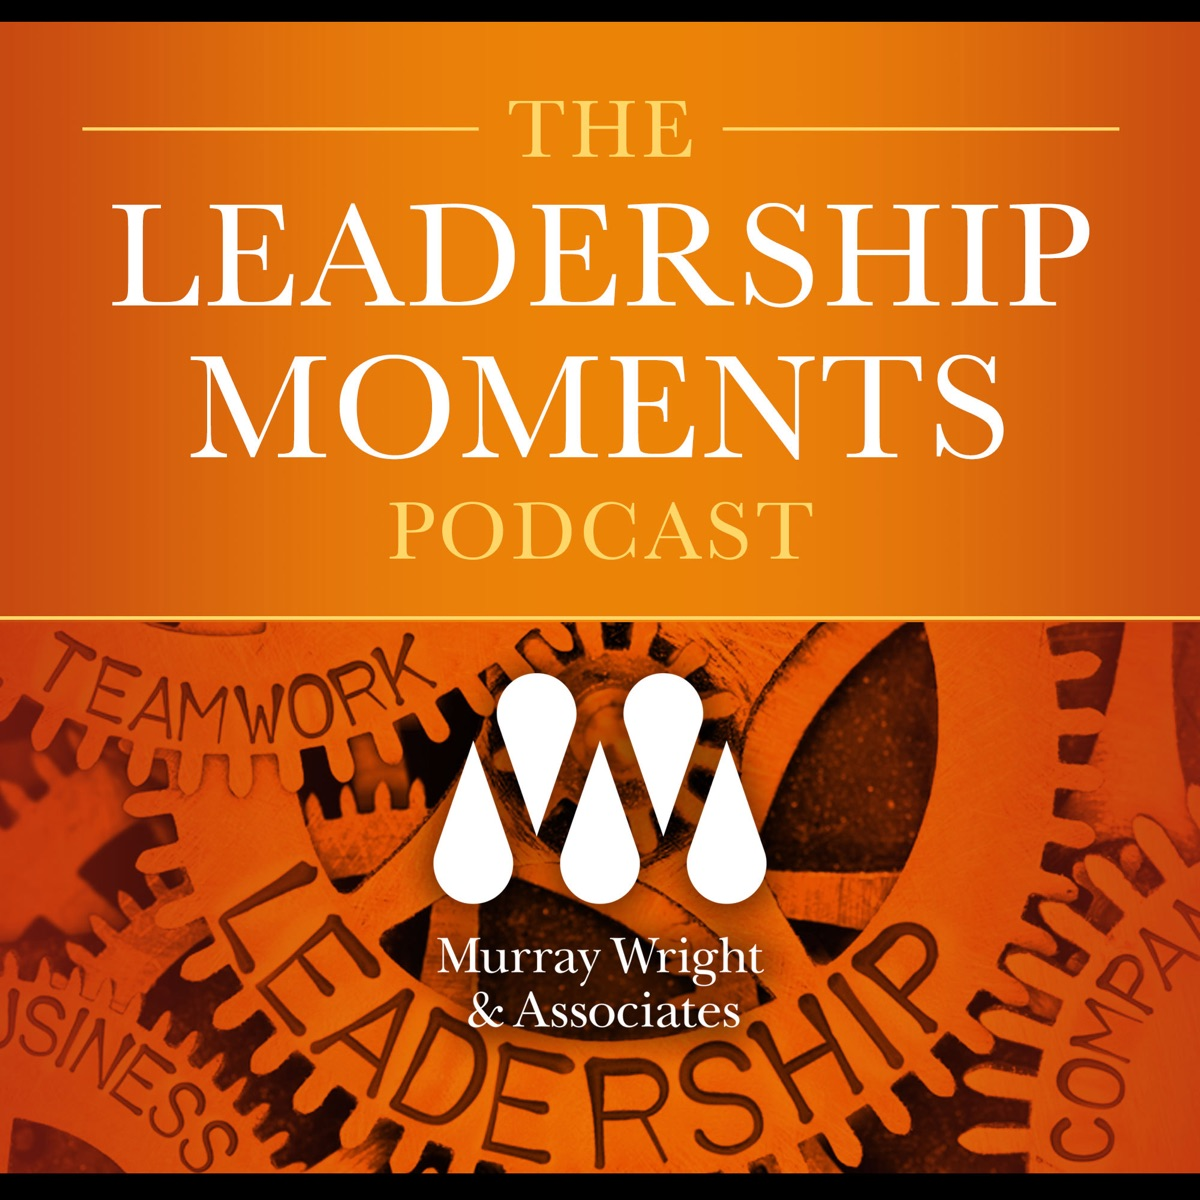 The Leadership Moments Podcast